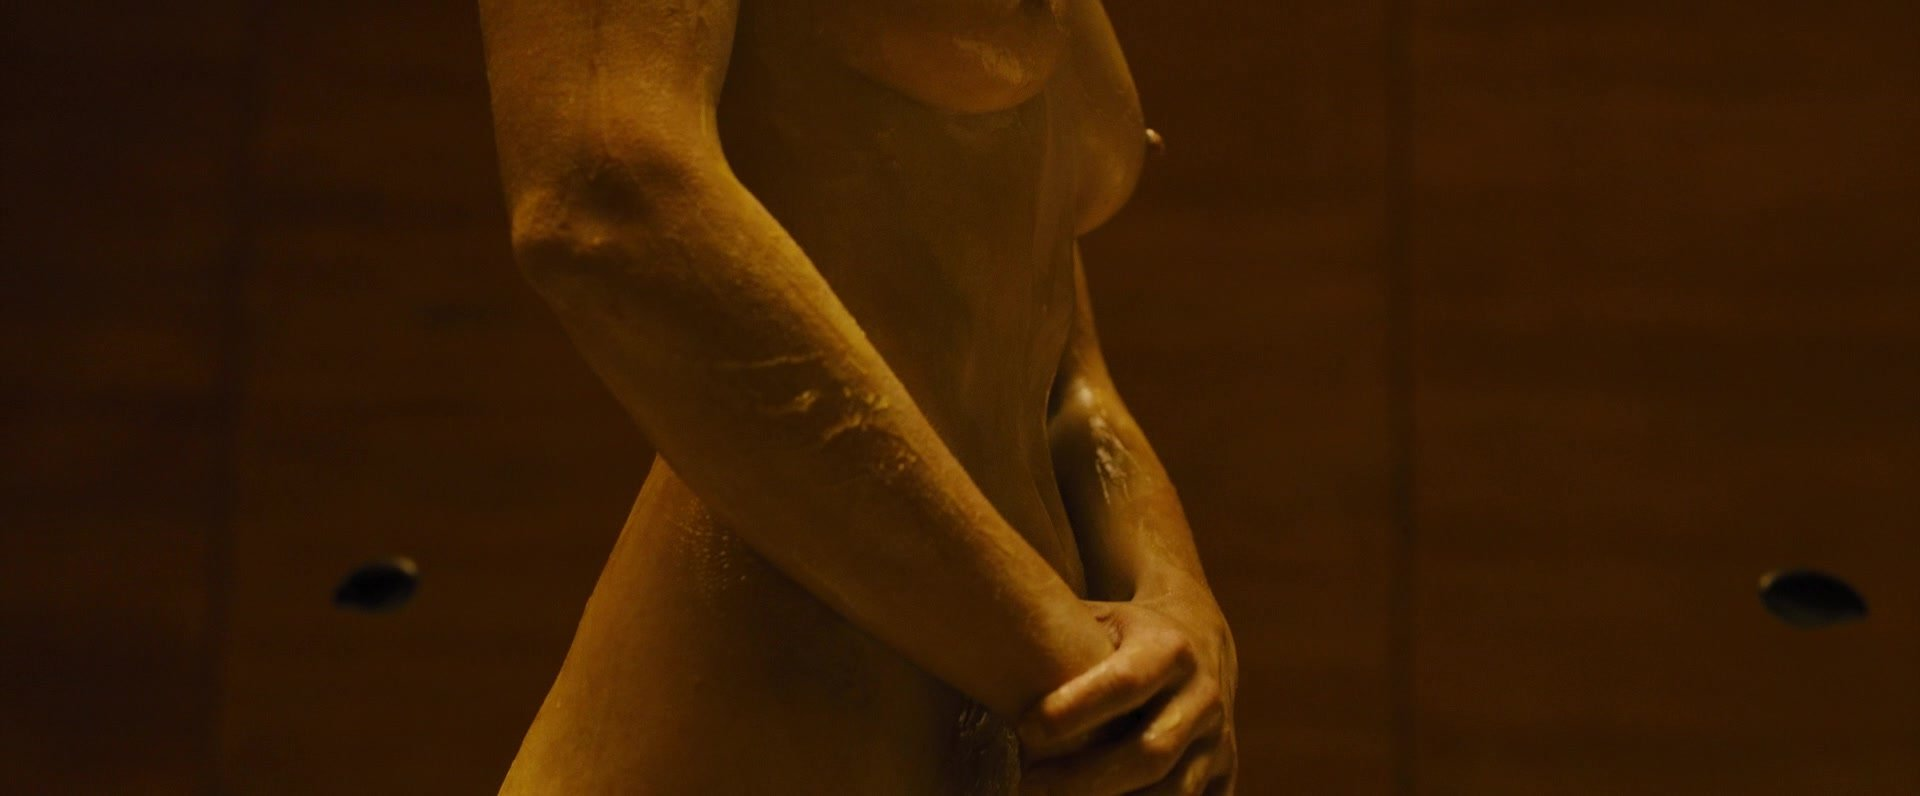 nude images blade runner